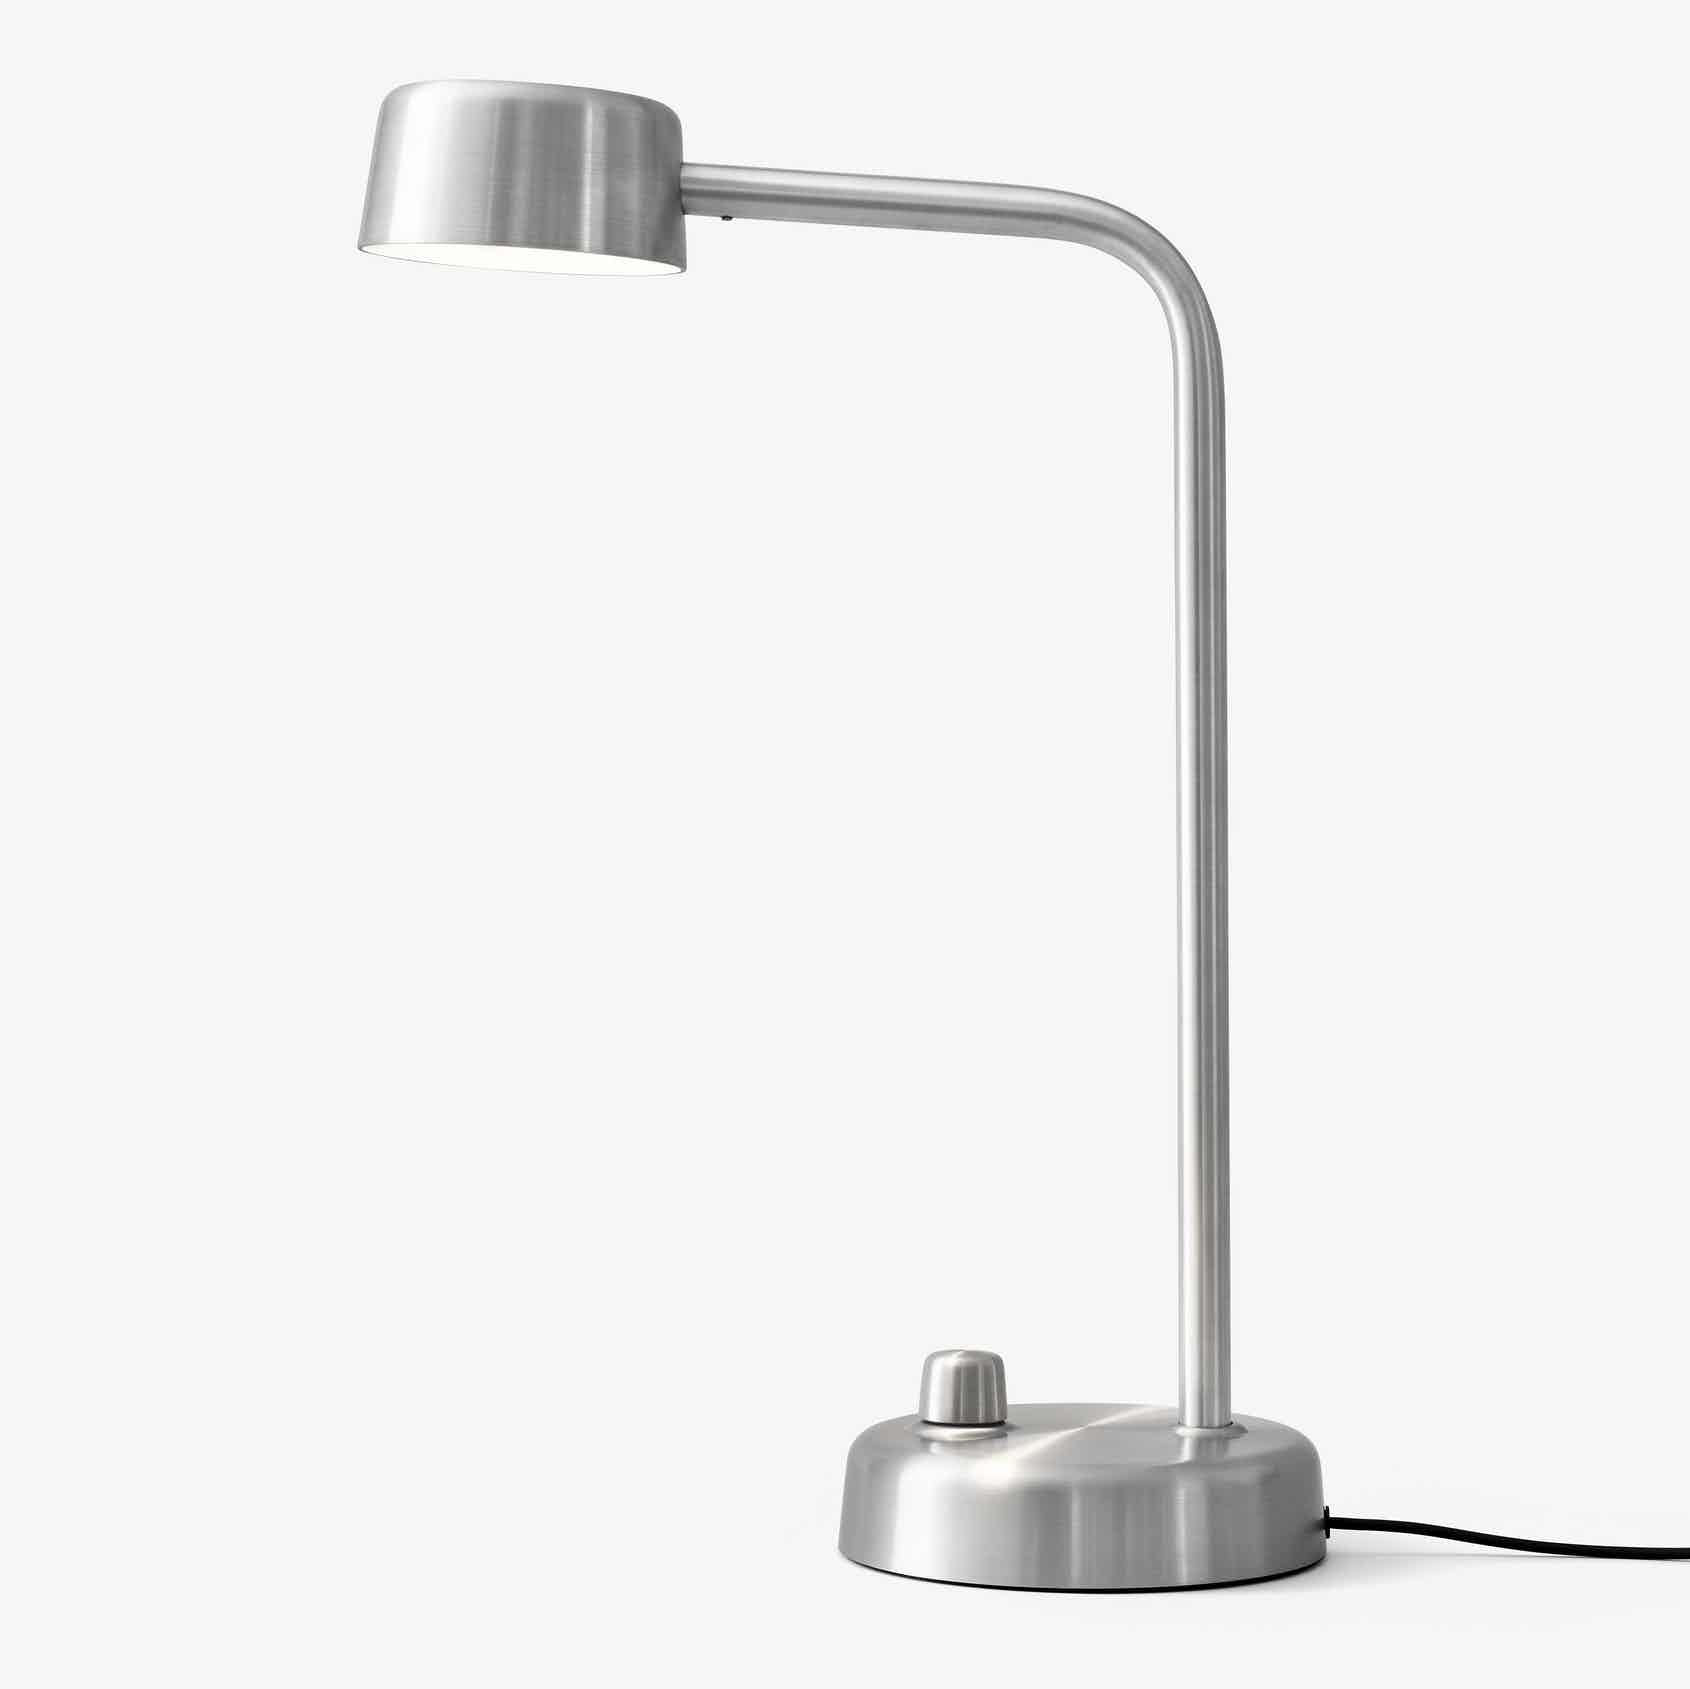 Working Title Table Lamp By Andtradition Now Available At Haute Living Table Lamp Lighting Design Desk Lamp